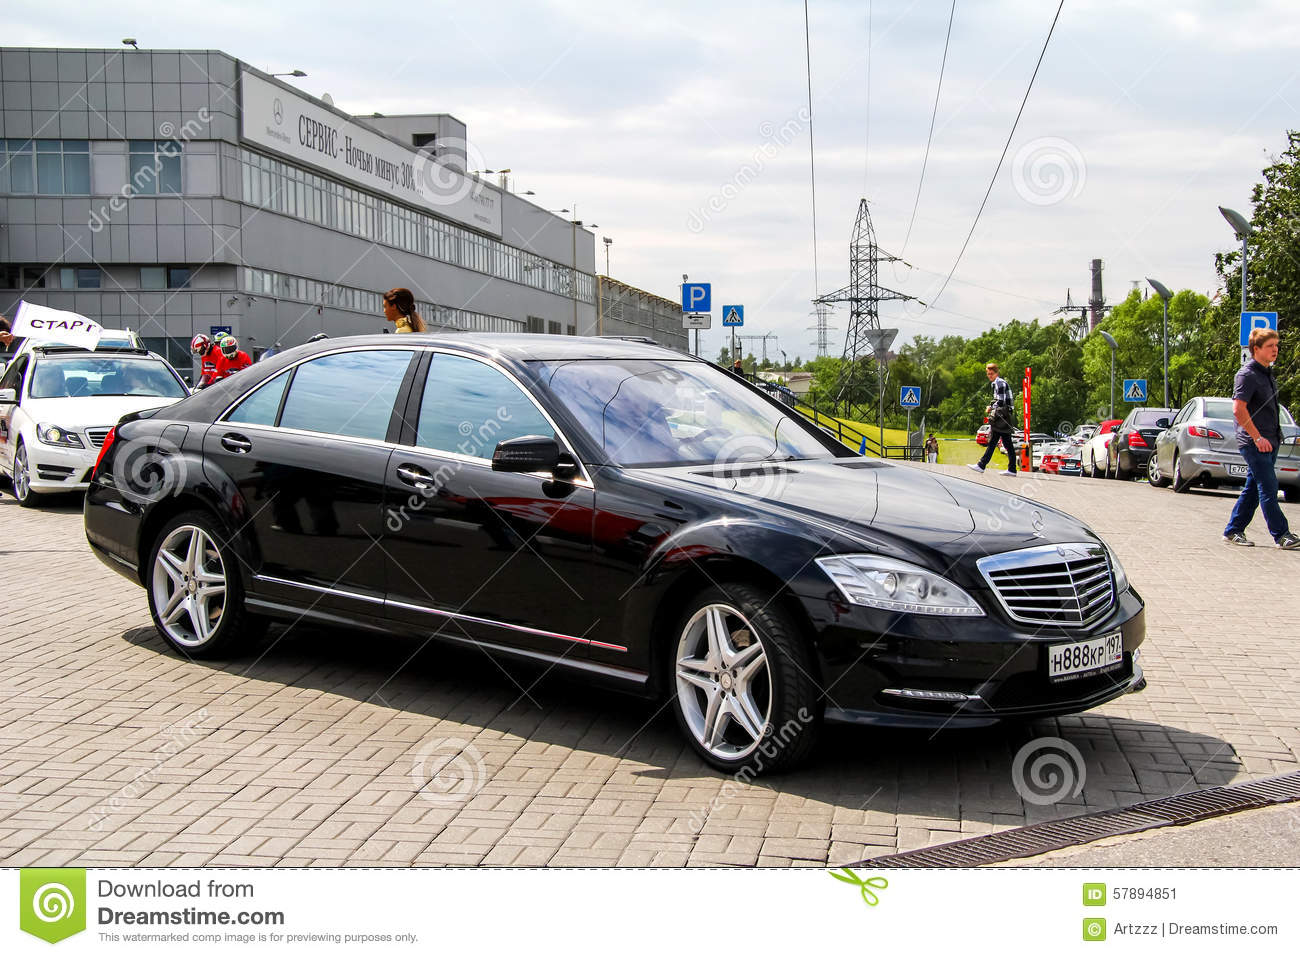 Mercedes benz w221 s class editorial photo image of city for Mercedes benz w221 price